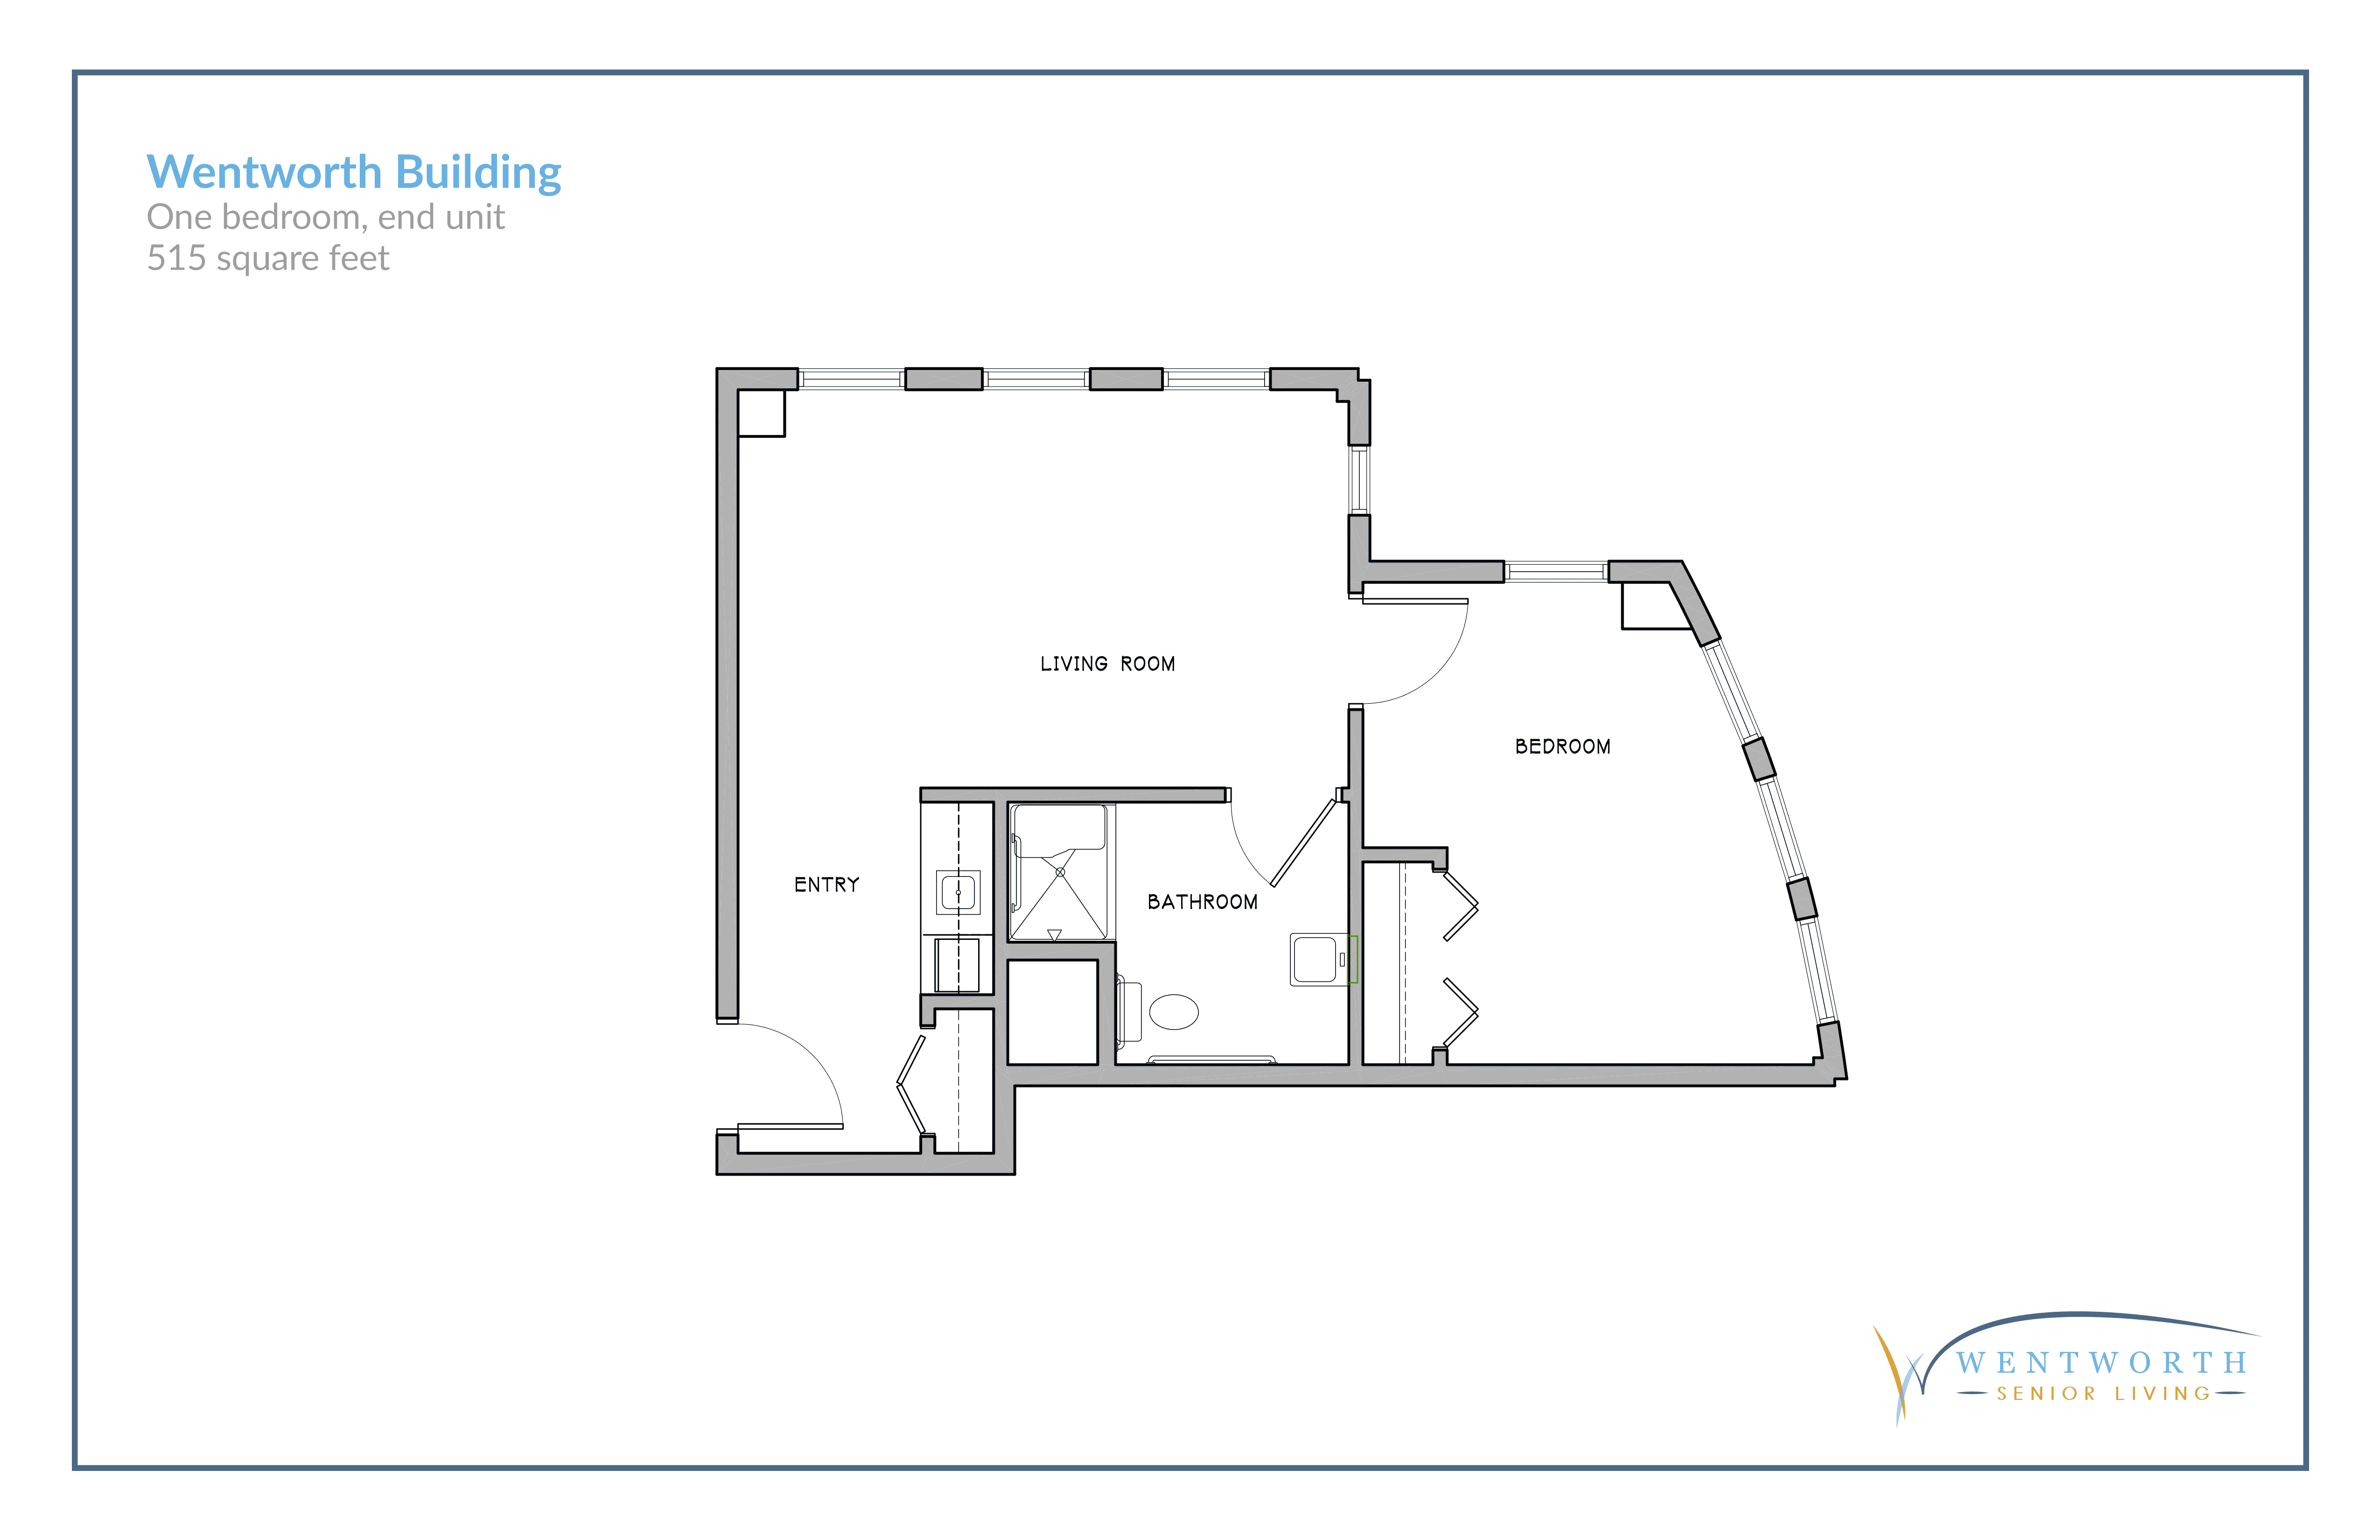 Floor plan for one bedroom end unit.